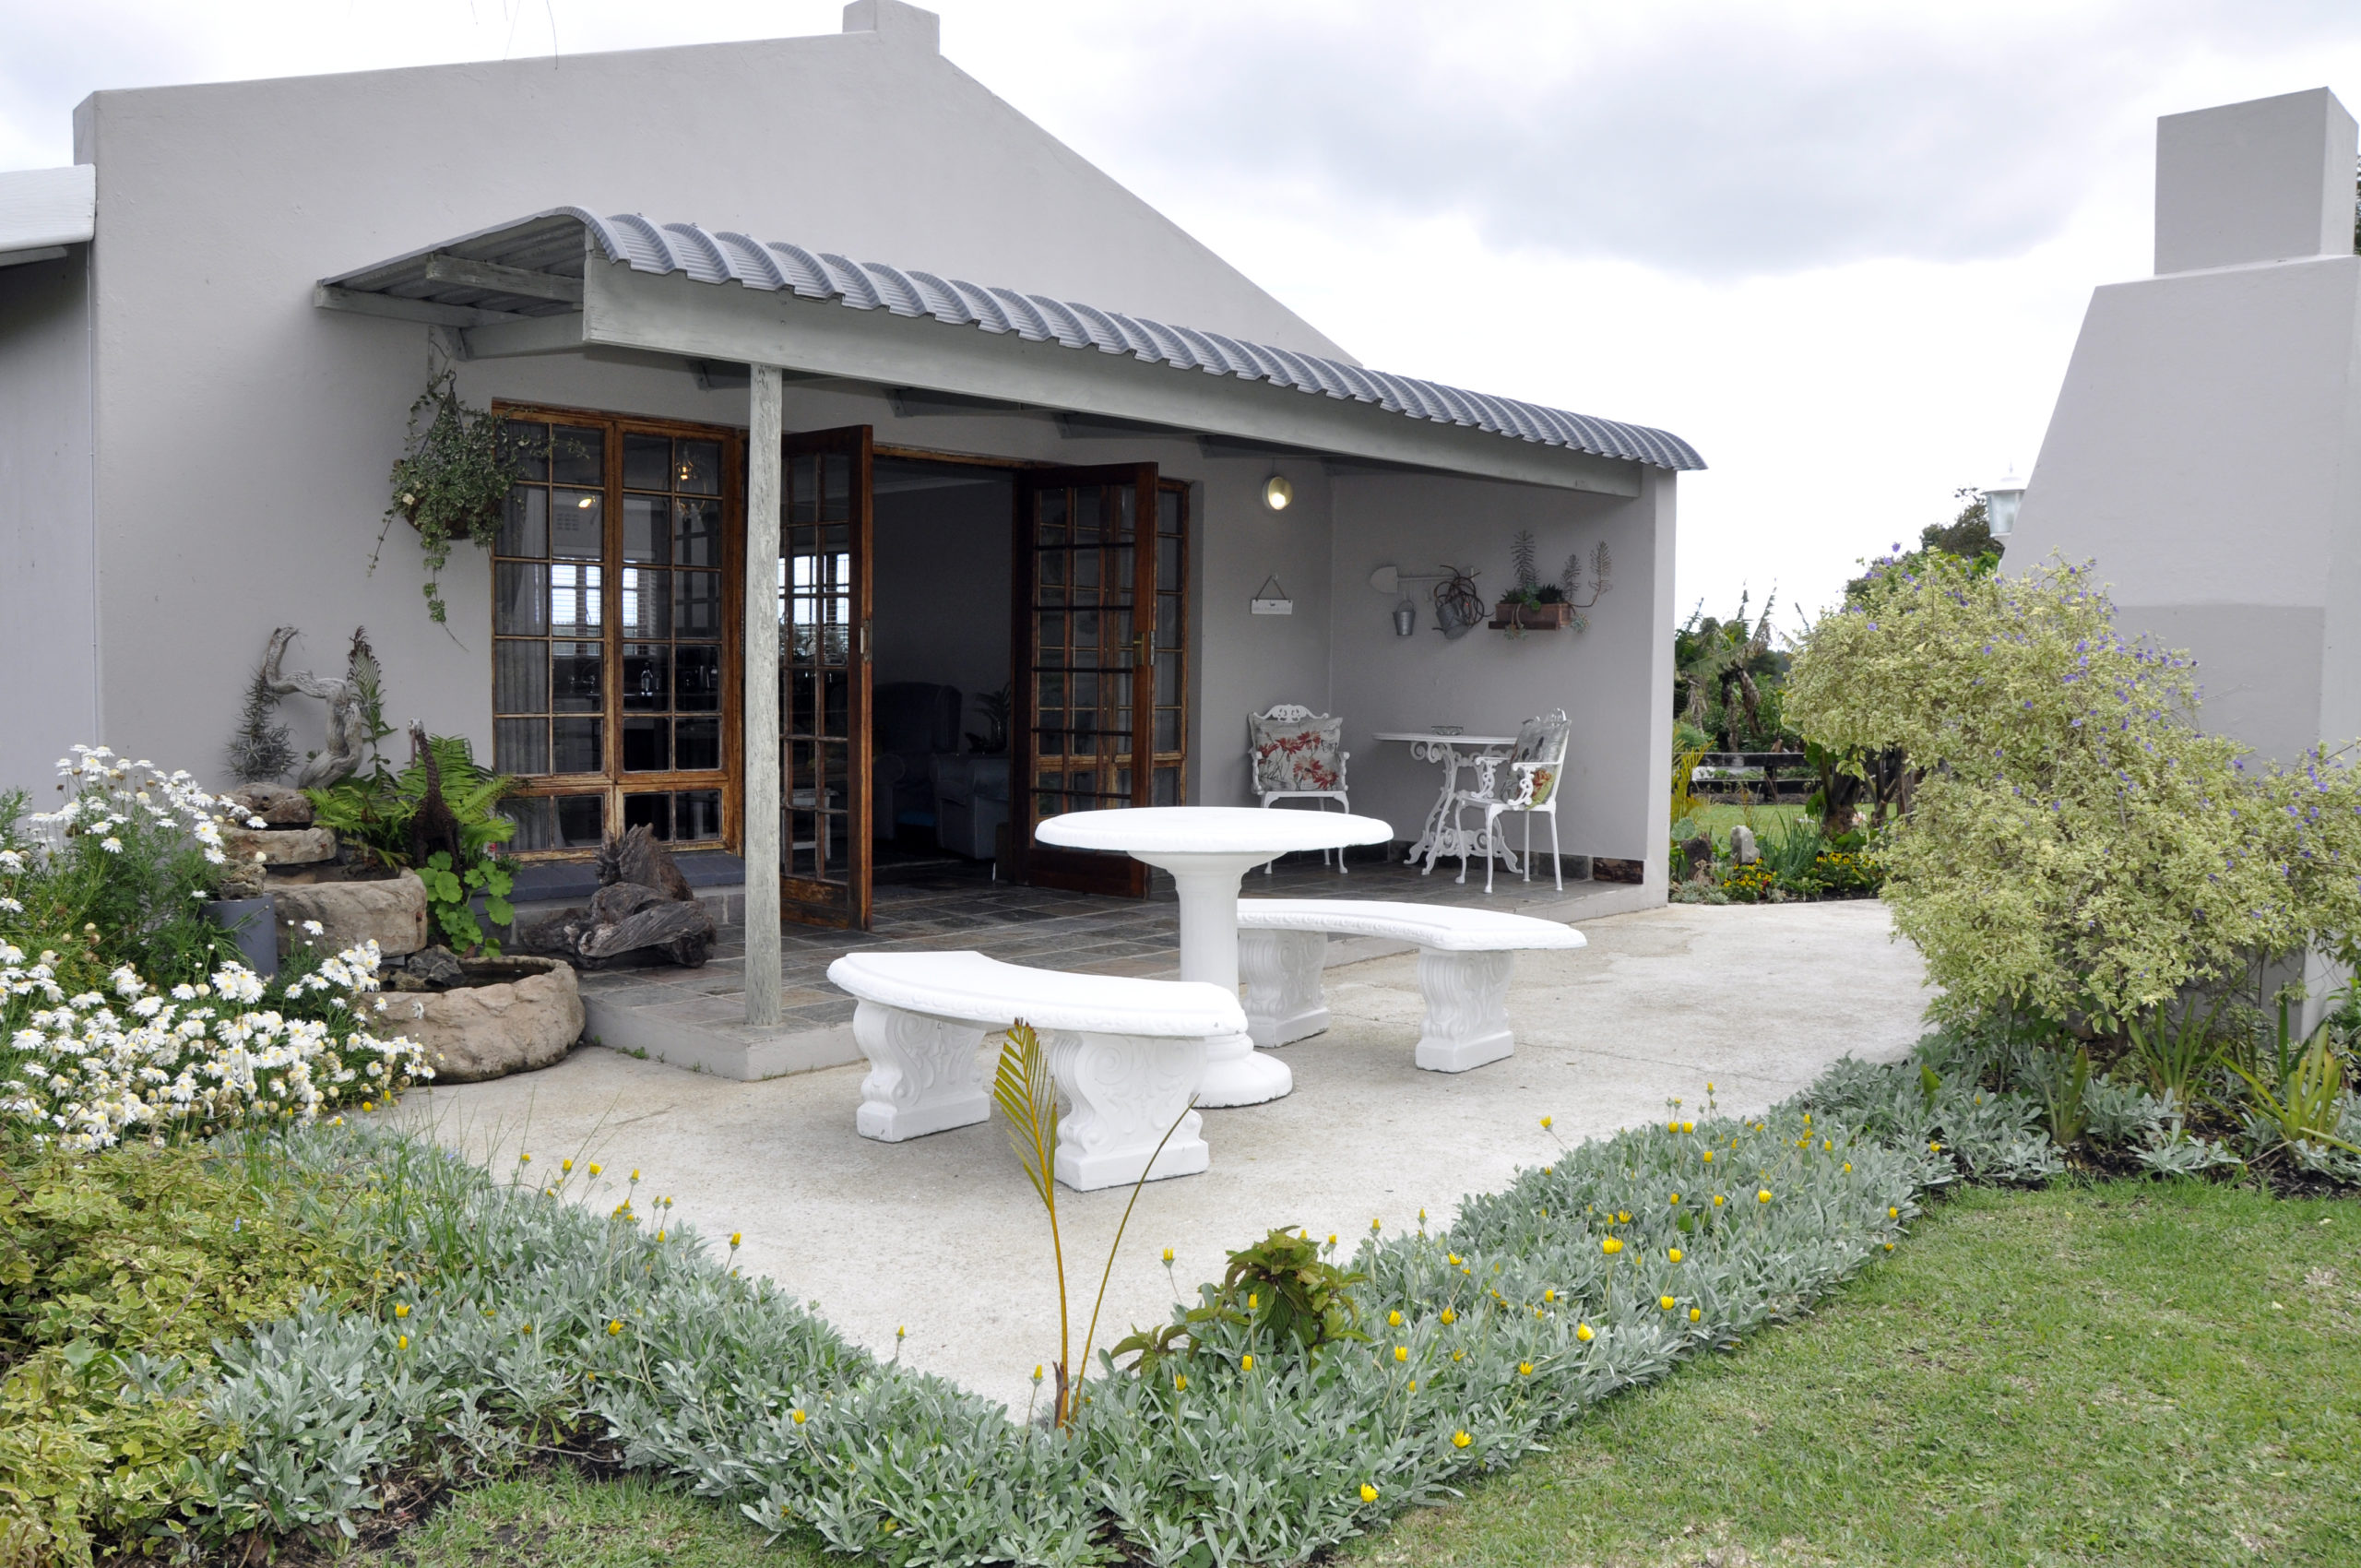 Tsitsikamma Gardens Self-catering Cottage #1 - Exterior view from the garden